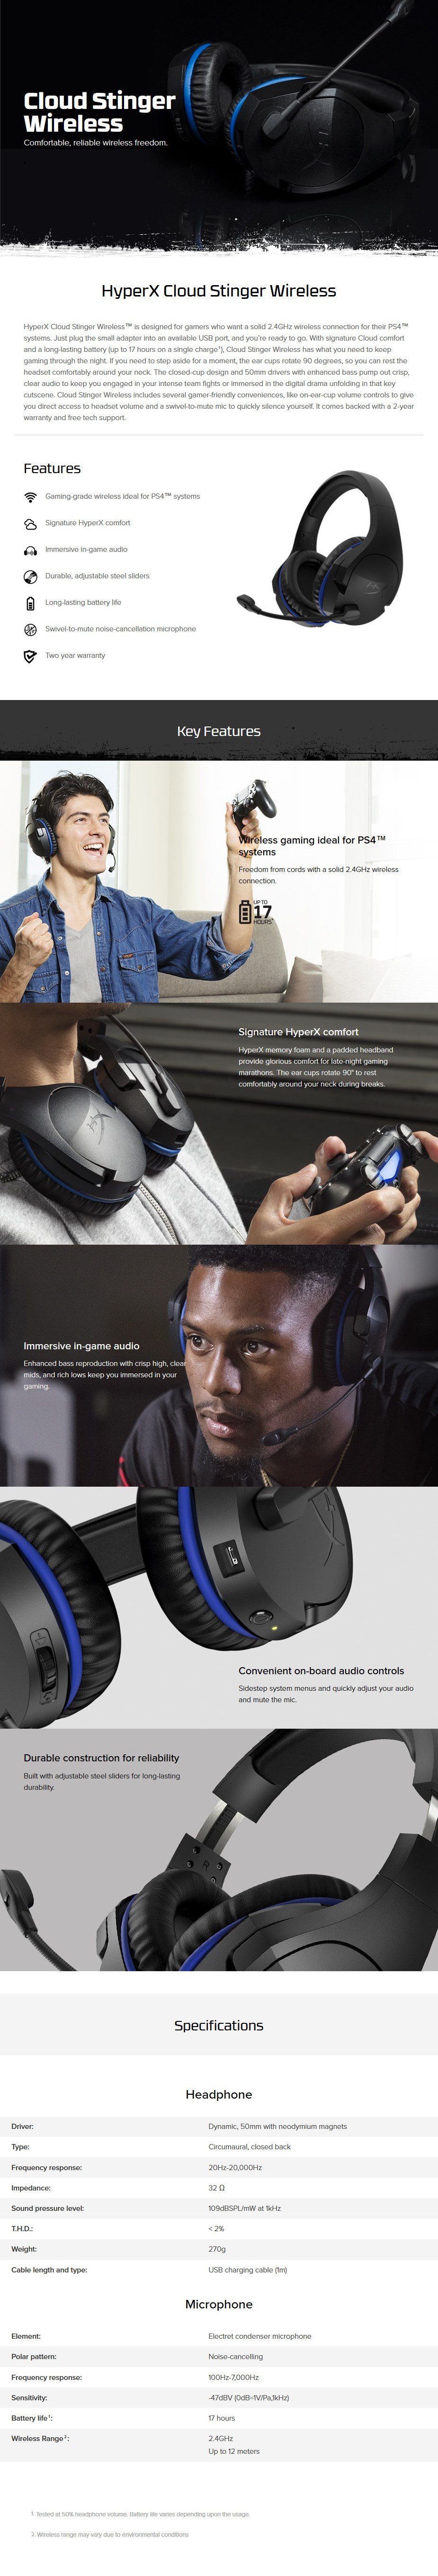 HyperX Cloud Stinger Wireless Gaming Headset for PS4 - Desktop Overview 1